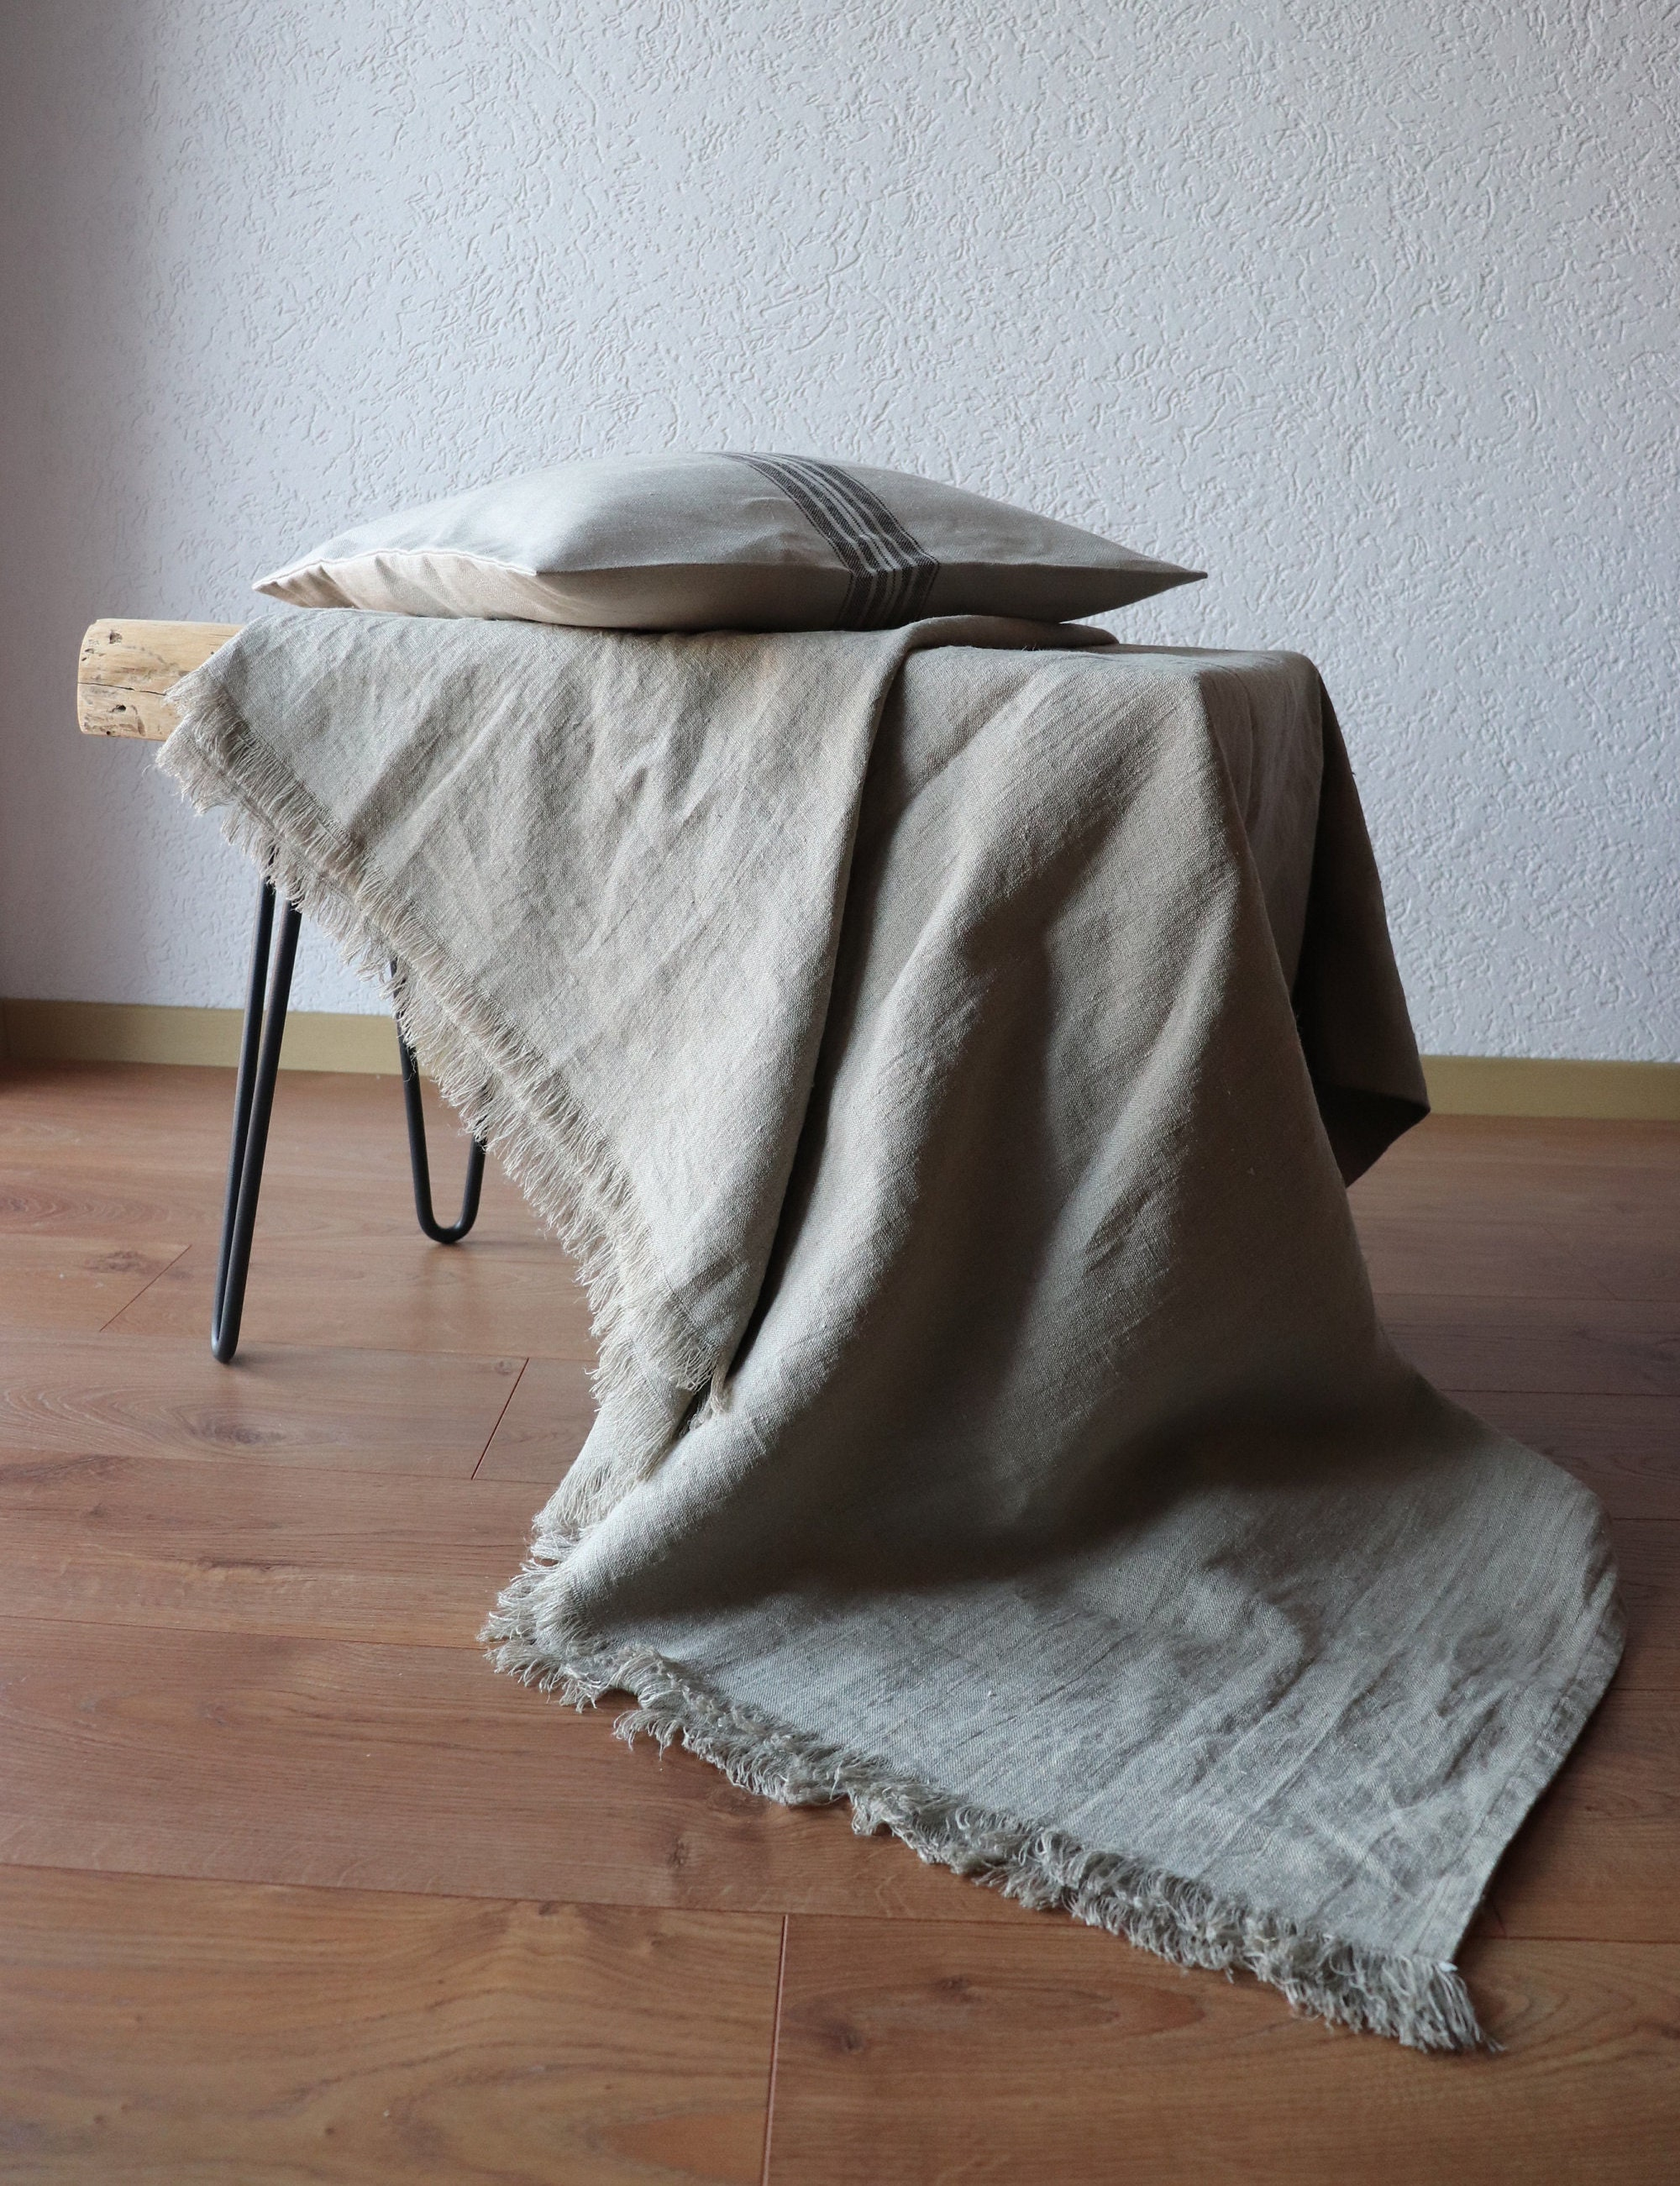 Linen Throw Blanket For Summer Made Of Natural Flax